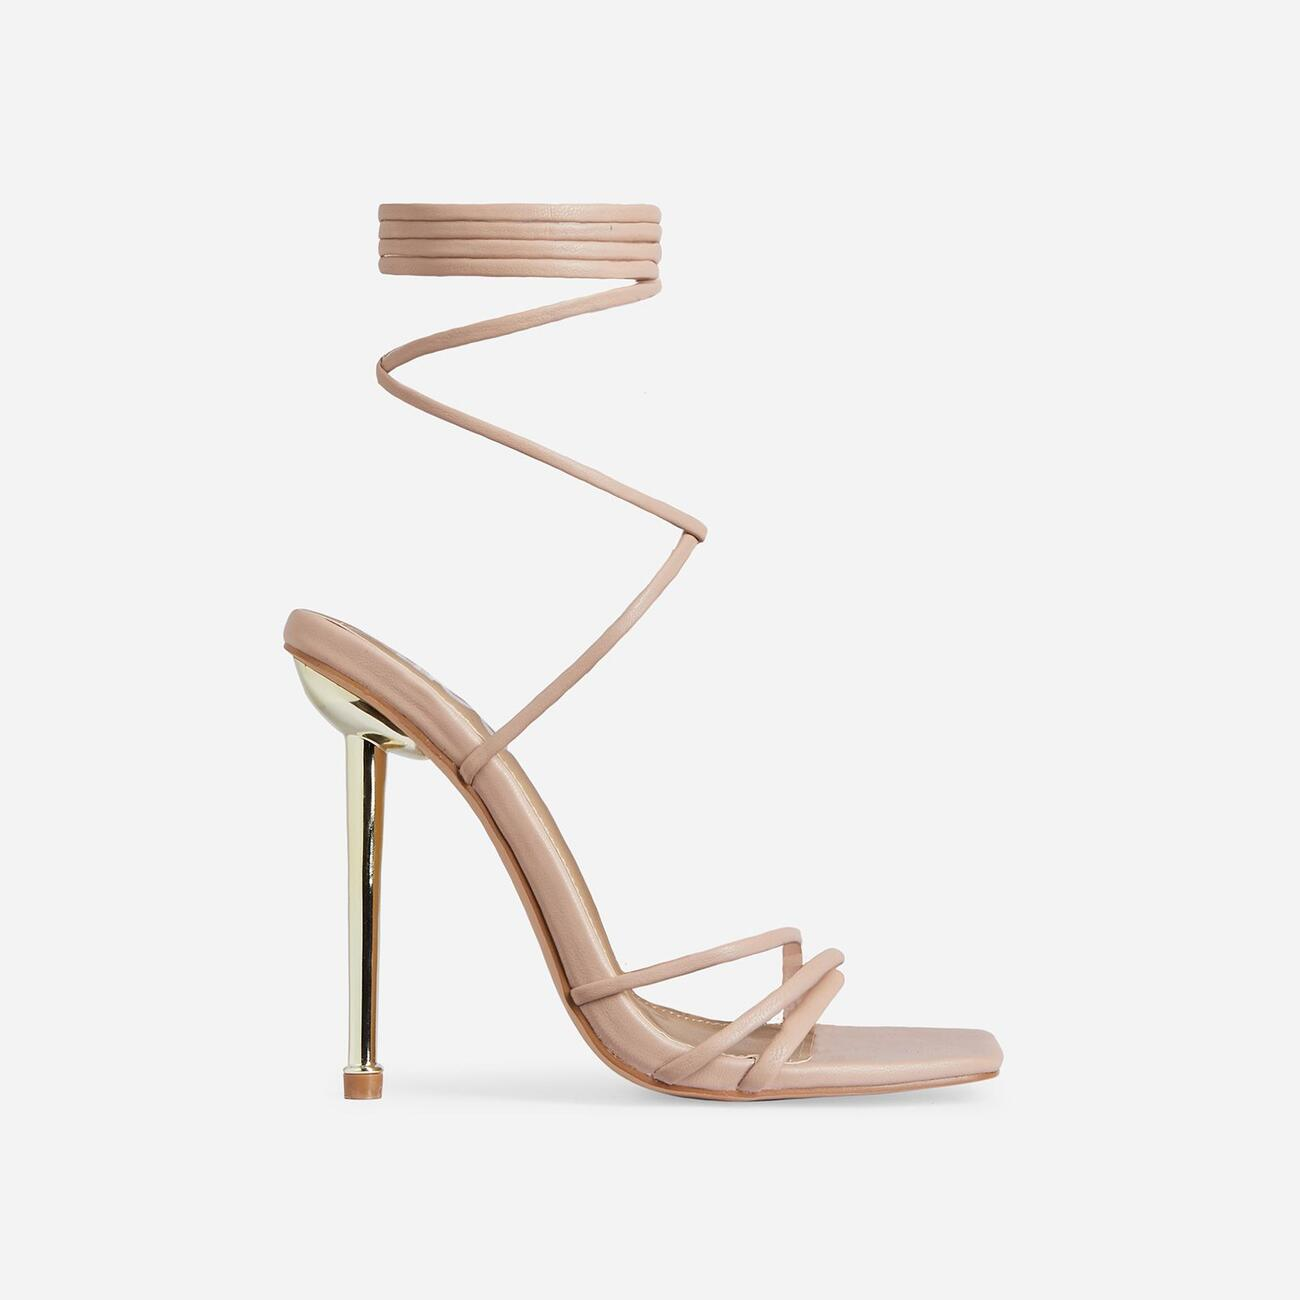 Word-Up Lace Up Square Toe Heel In Nude Faux Leather Image 1